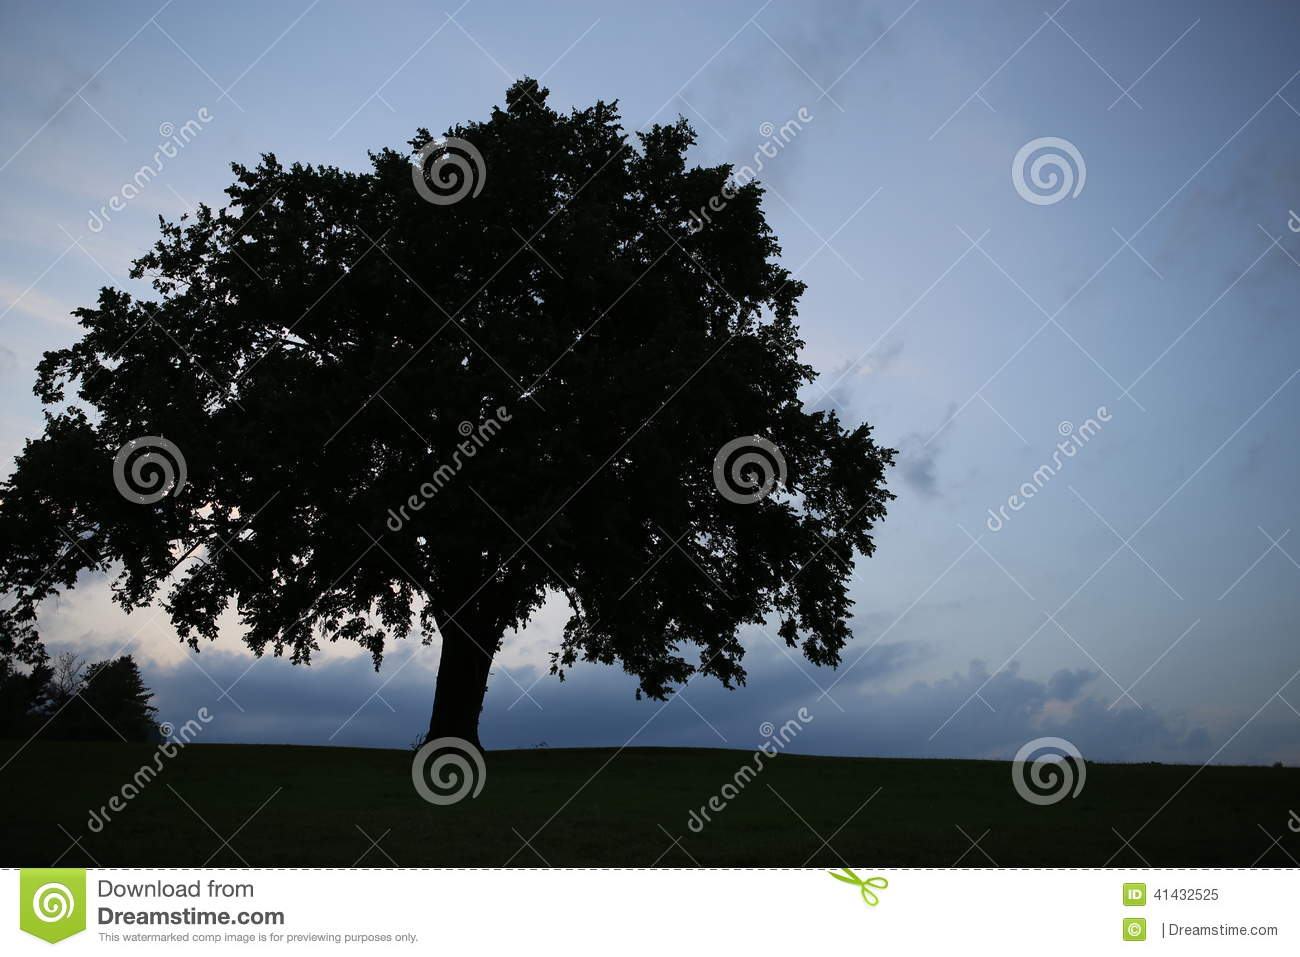 Silhouette of a beautiful tree